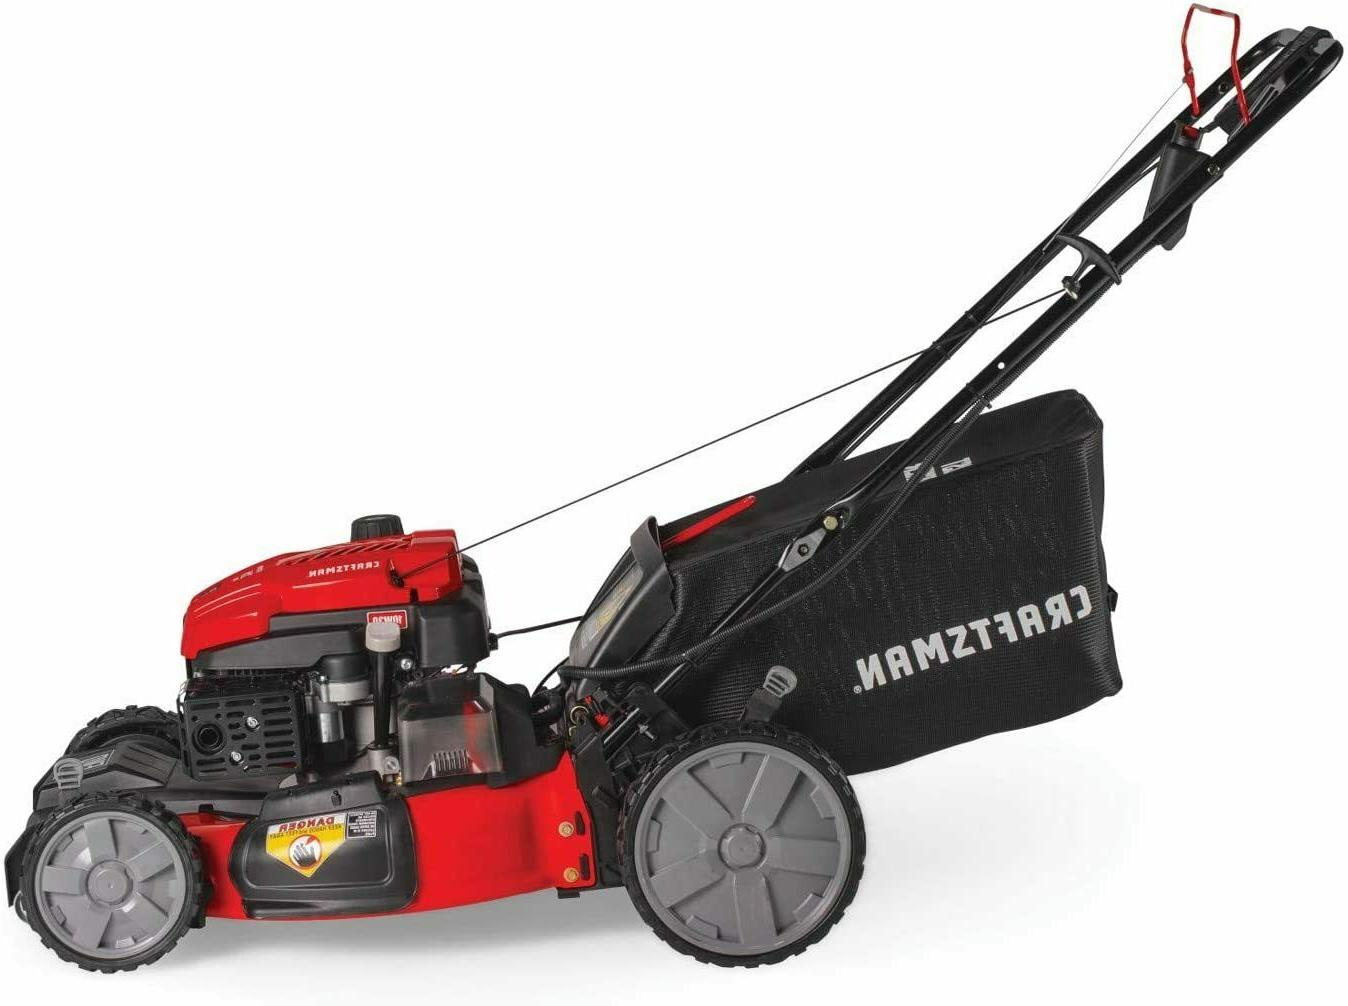 Craftsman Lawn inch New Propelled, Behind